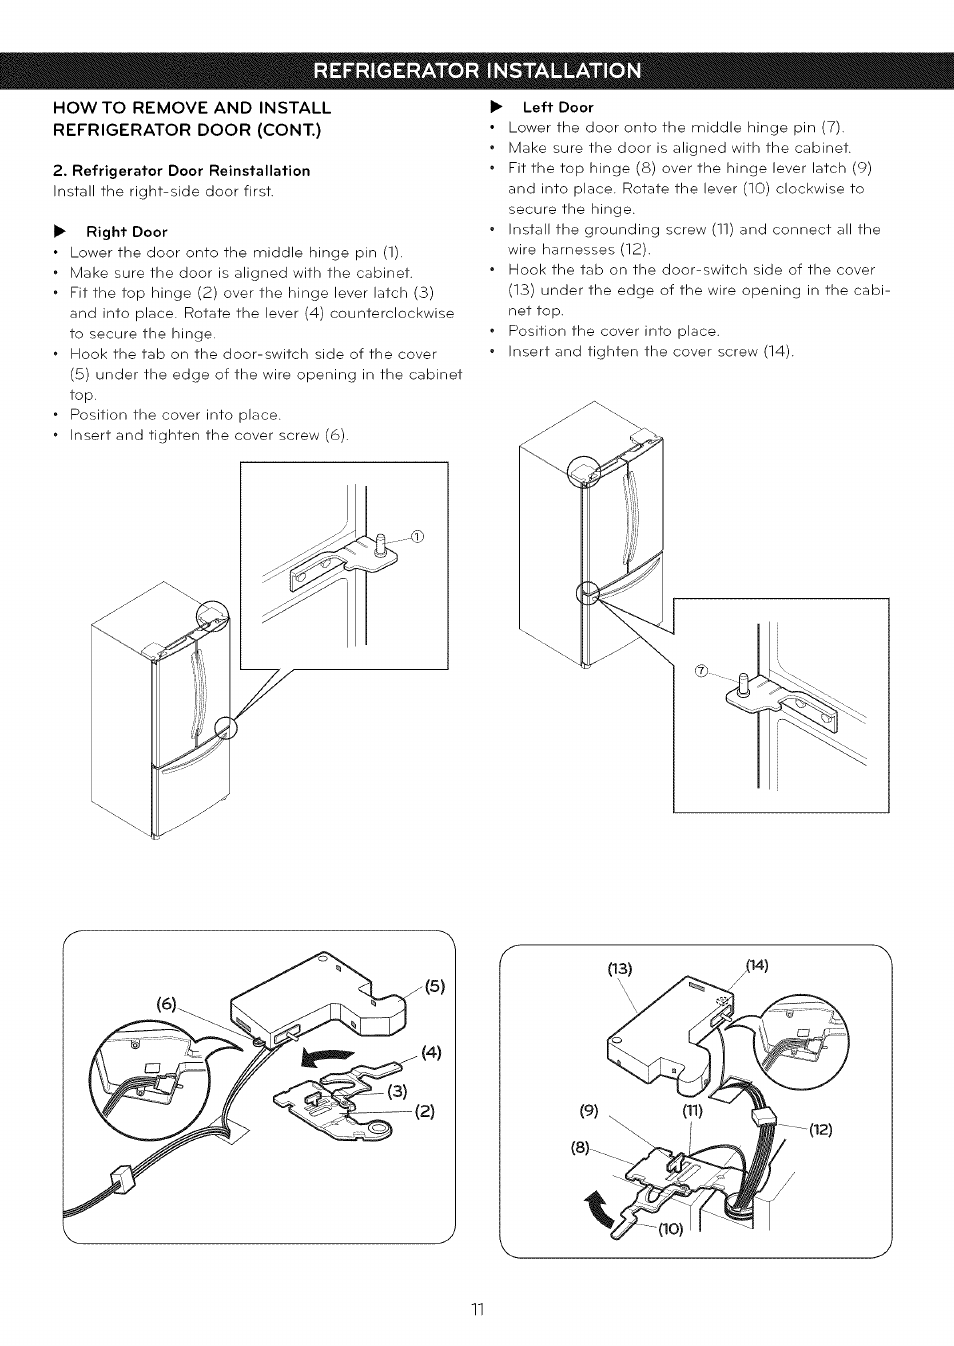 Howto remove and install refrigerator door (cont